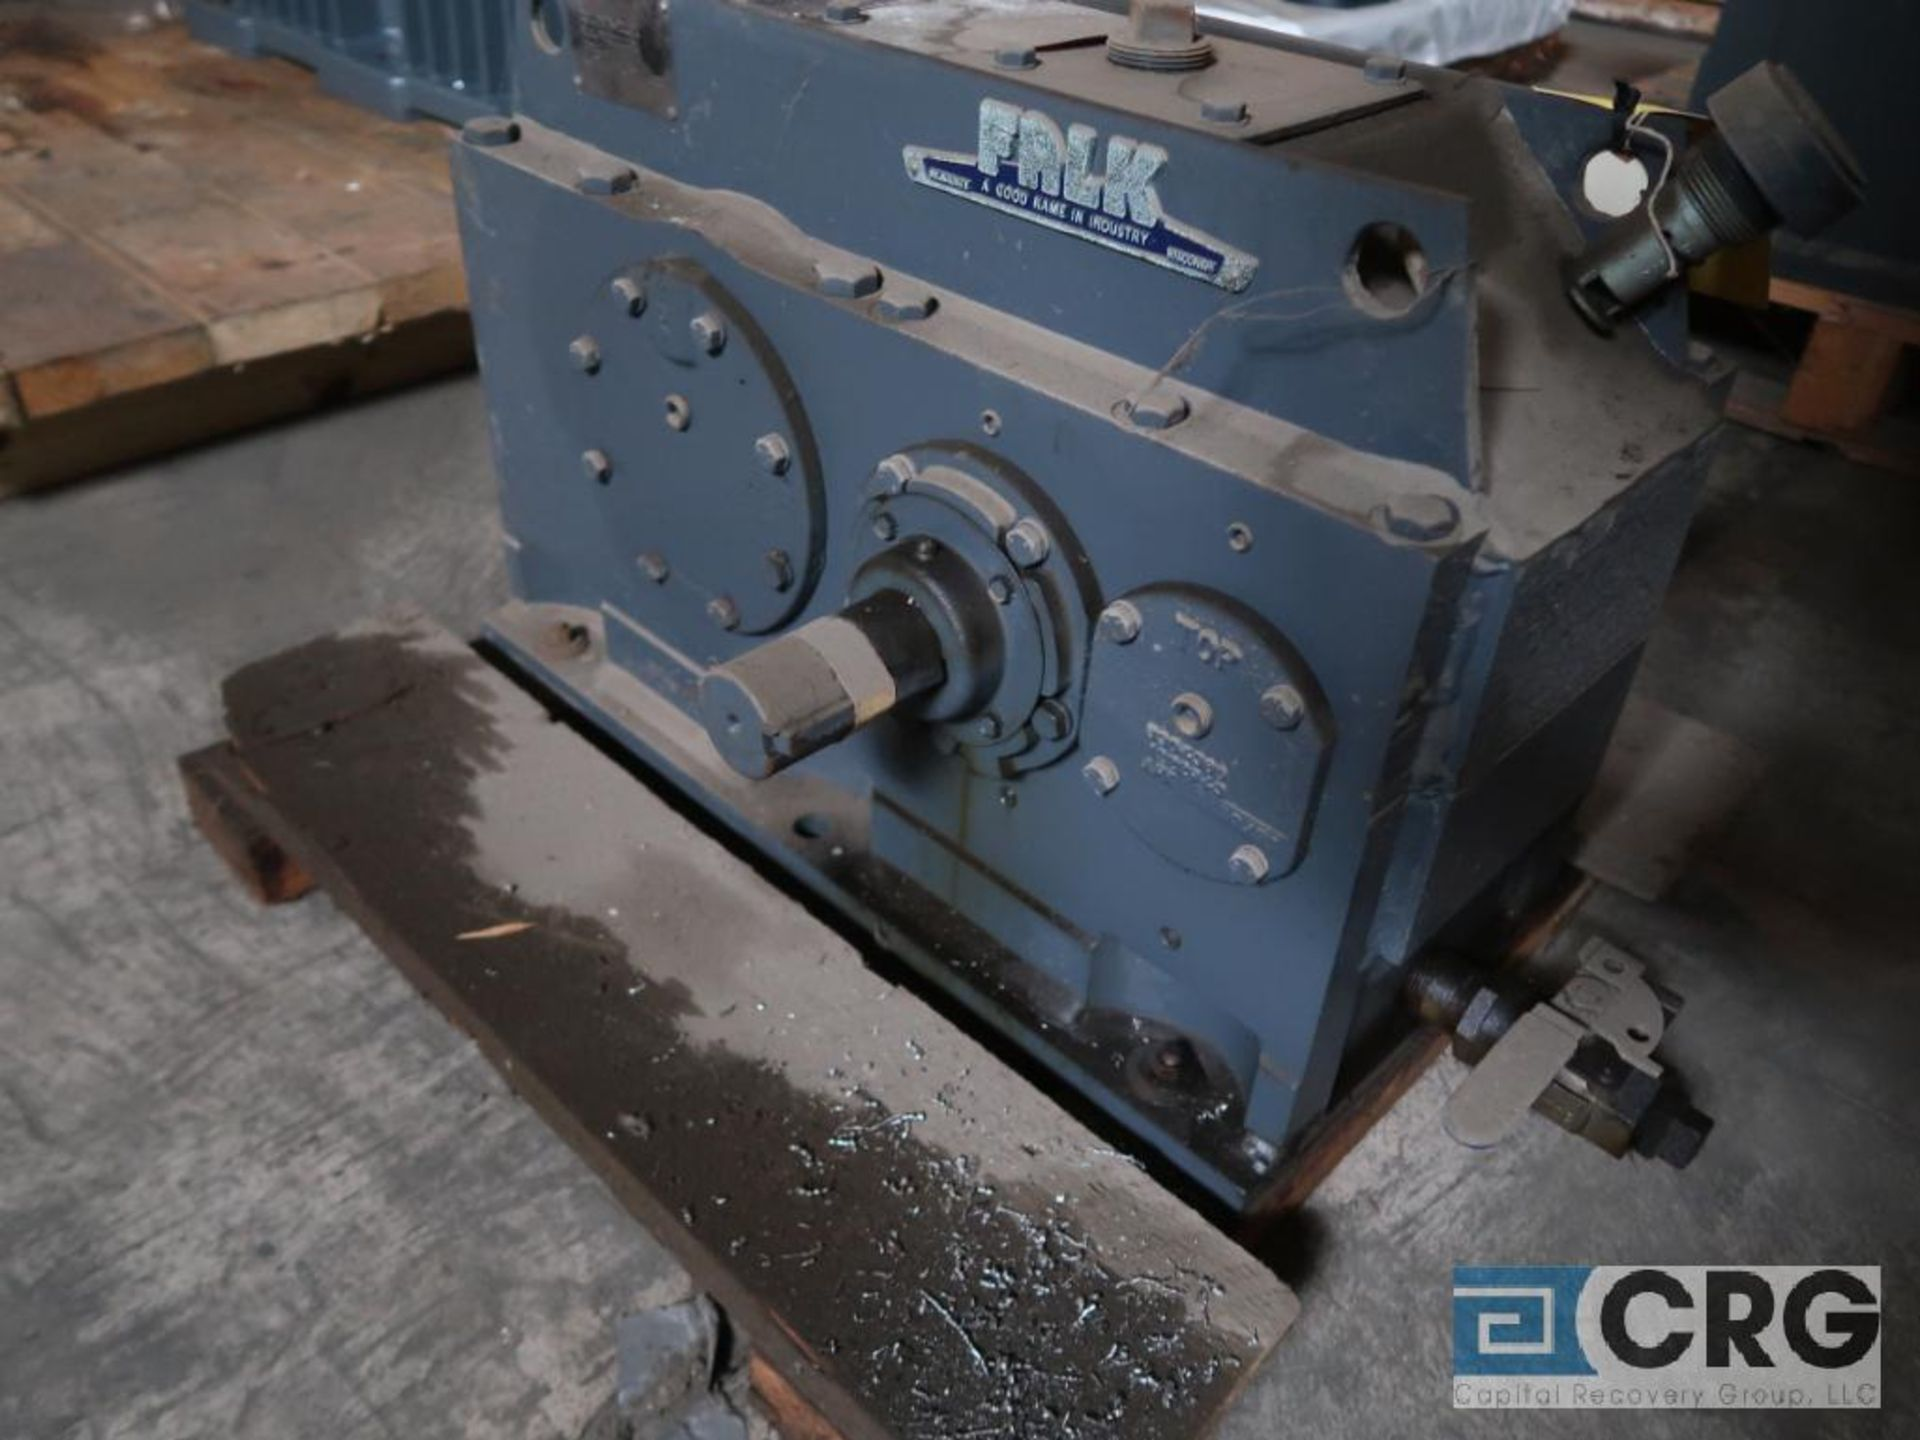 Falk 2050 Y1L gear drive, ratio 5.267, input RPM 1,750, output RPM 332.3, service rate HP. 75, s/n - Image 2 of 3